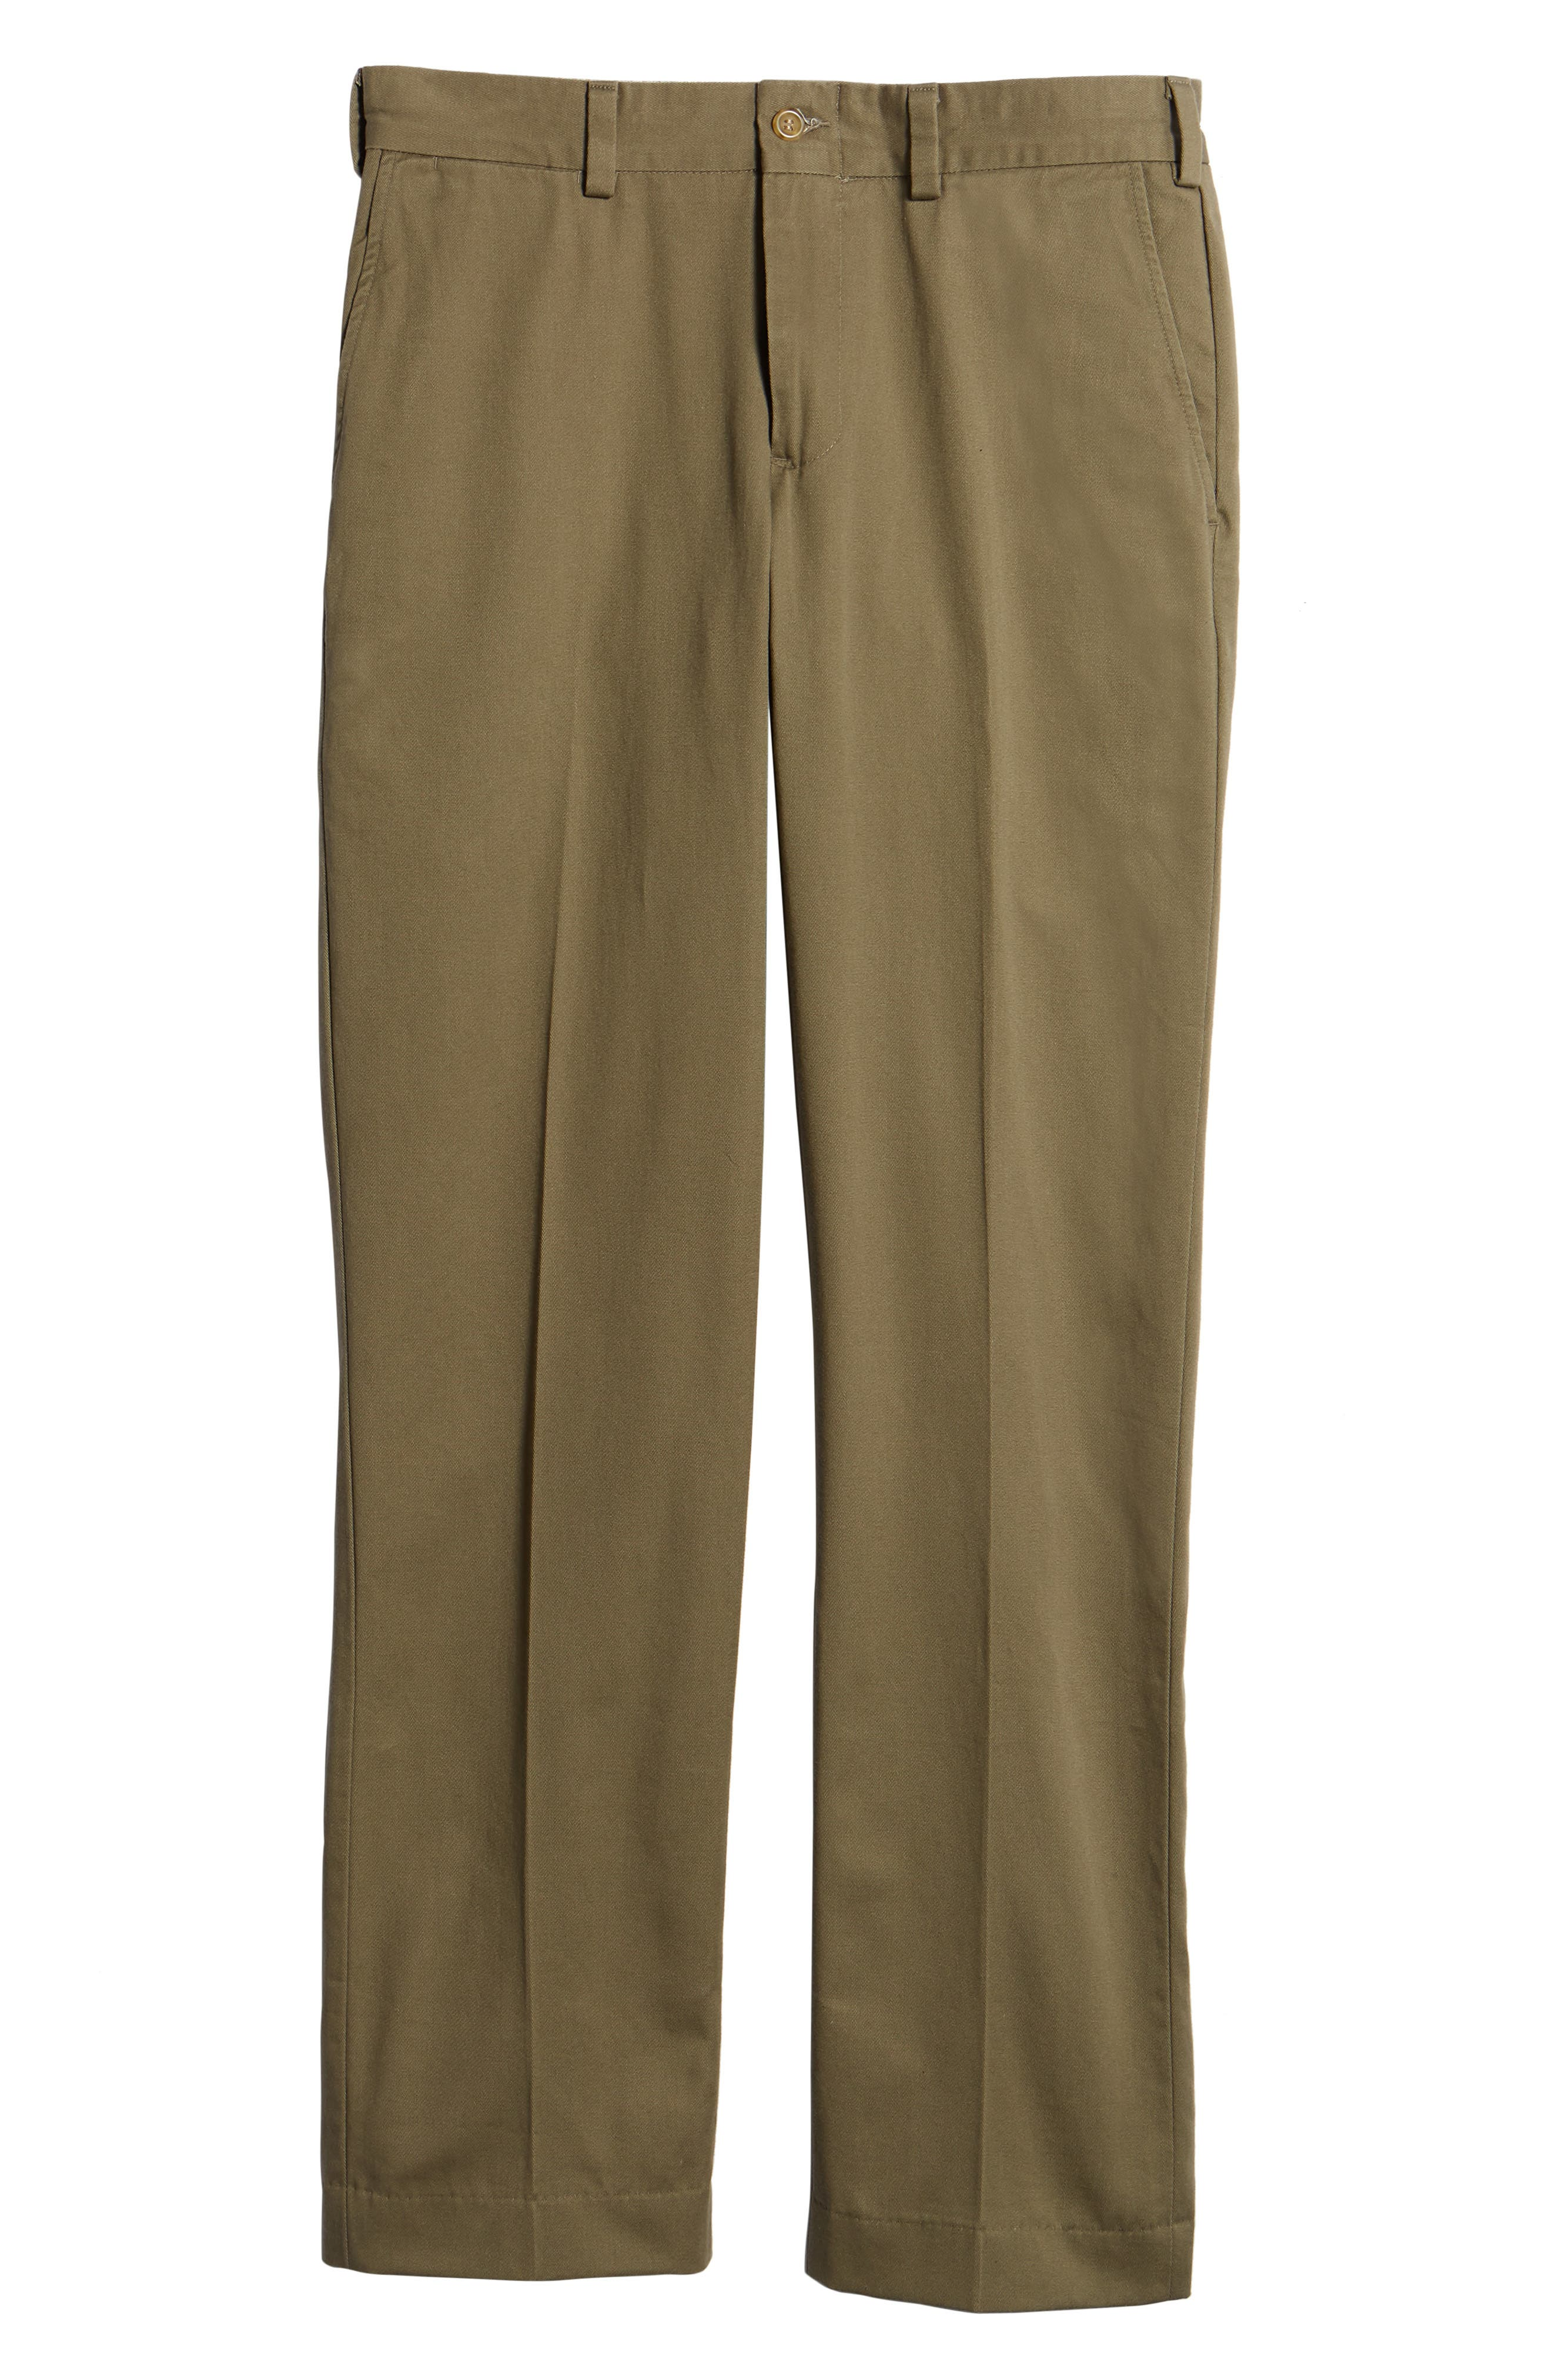 M3 Straight Fit Flat Front Vintage Twill Pants,                             Alternate thumbnail 6, color,                             330